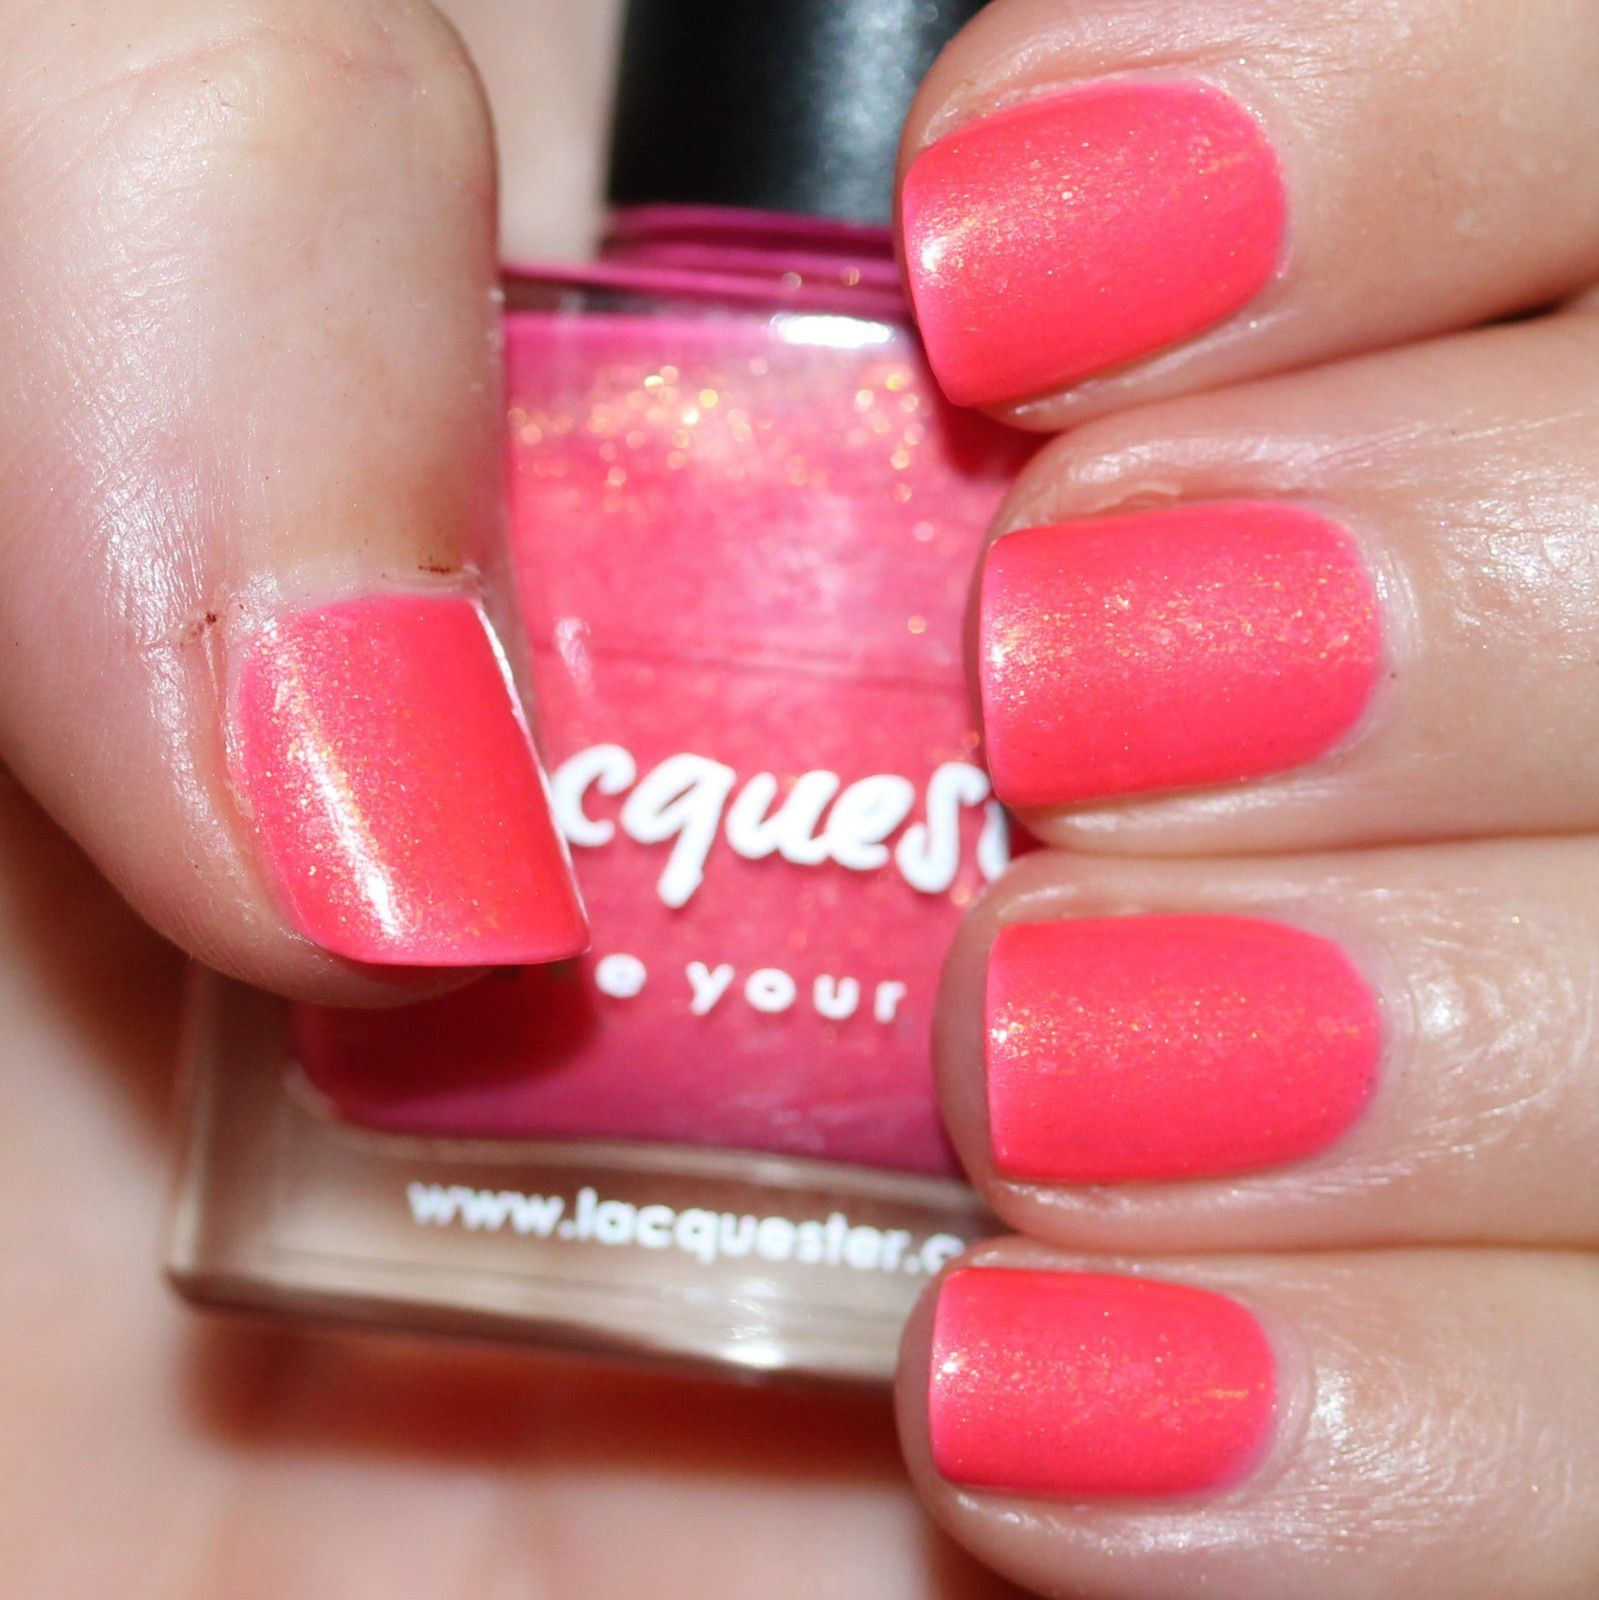 Essie Protein Base Coat / Lacquester Bahama Mama (Old Version) / HK Girl Top Coat